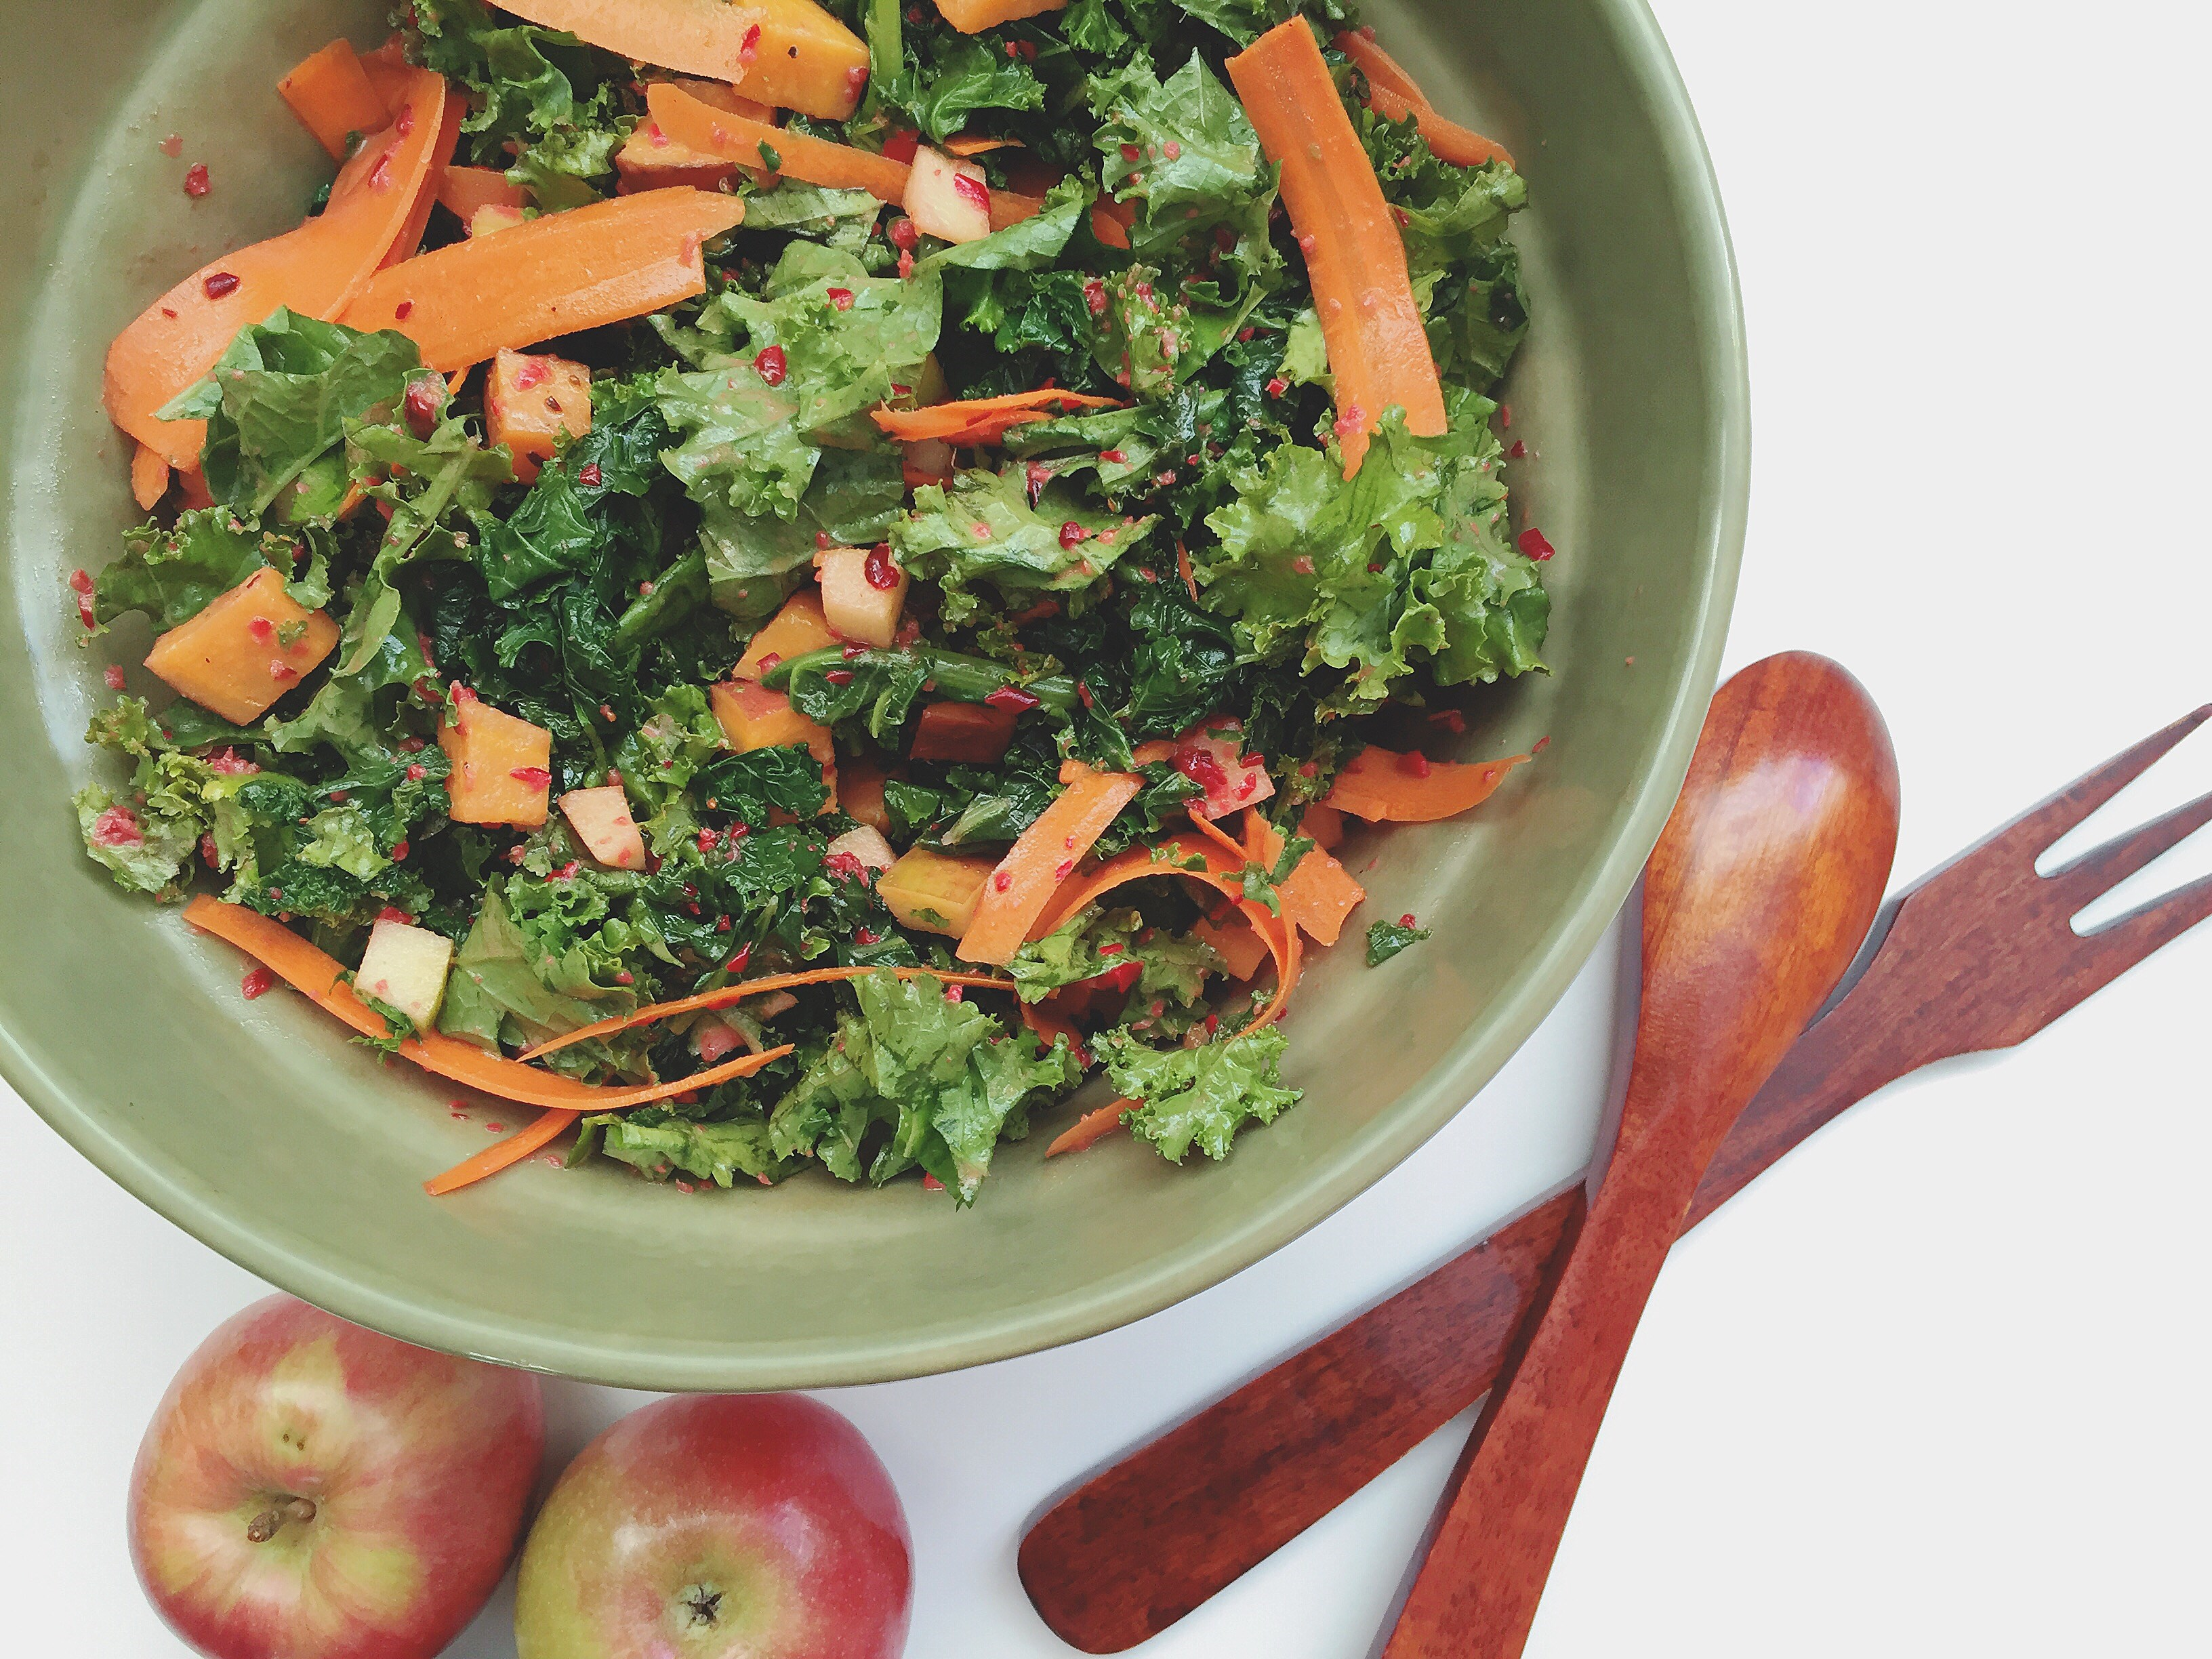 Jolene Hart's Warm Autumn salad